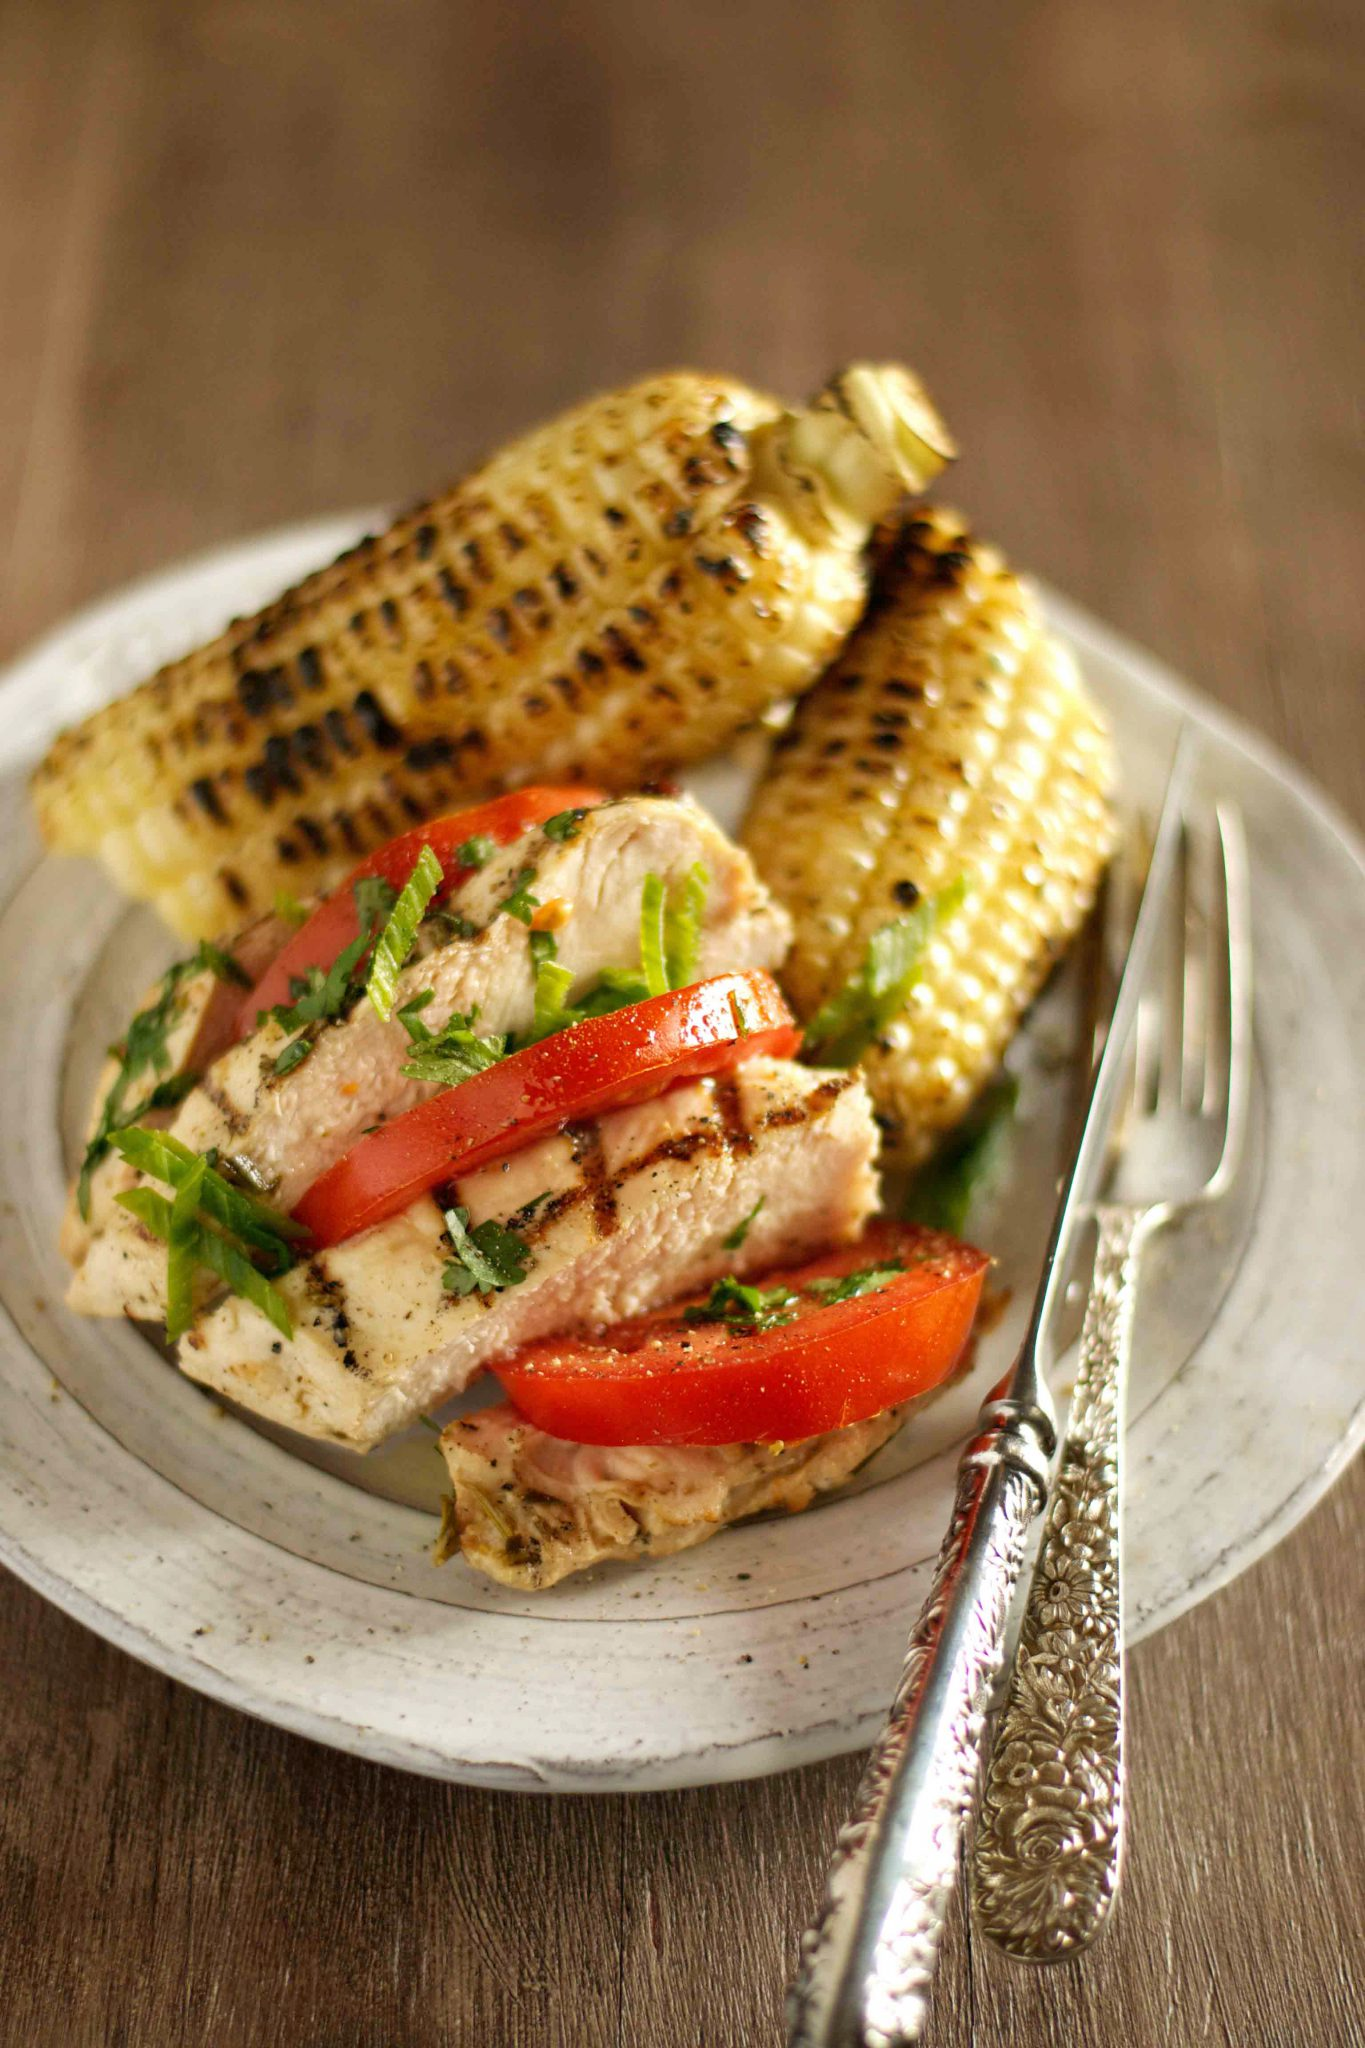 Try This Tasty Summer Recipe: Smoky Grilled Chicken with Corn